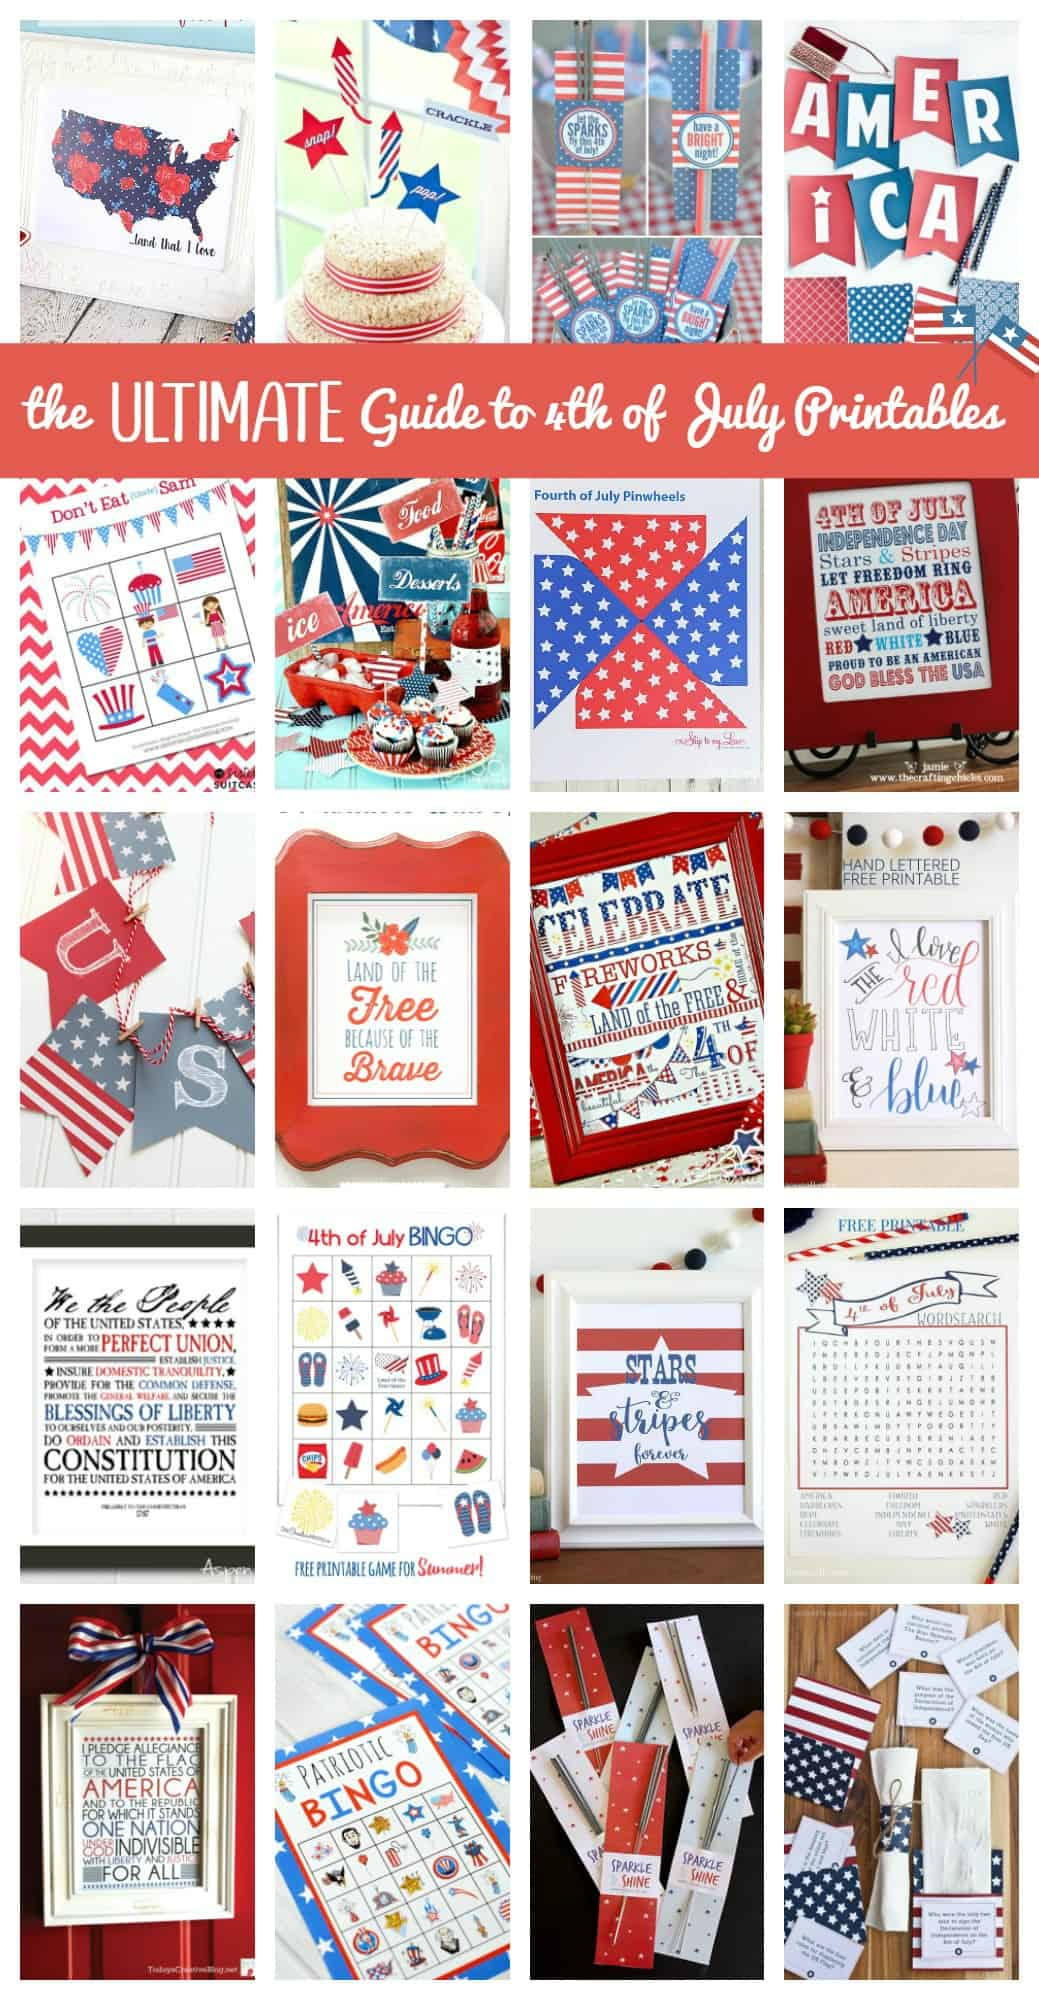 The Ultimate Guide To 4th Of July Printables